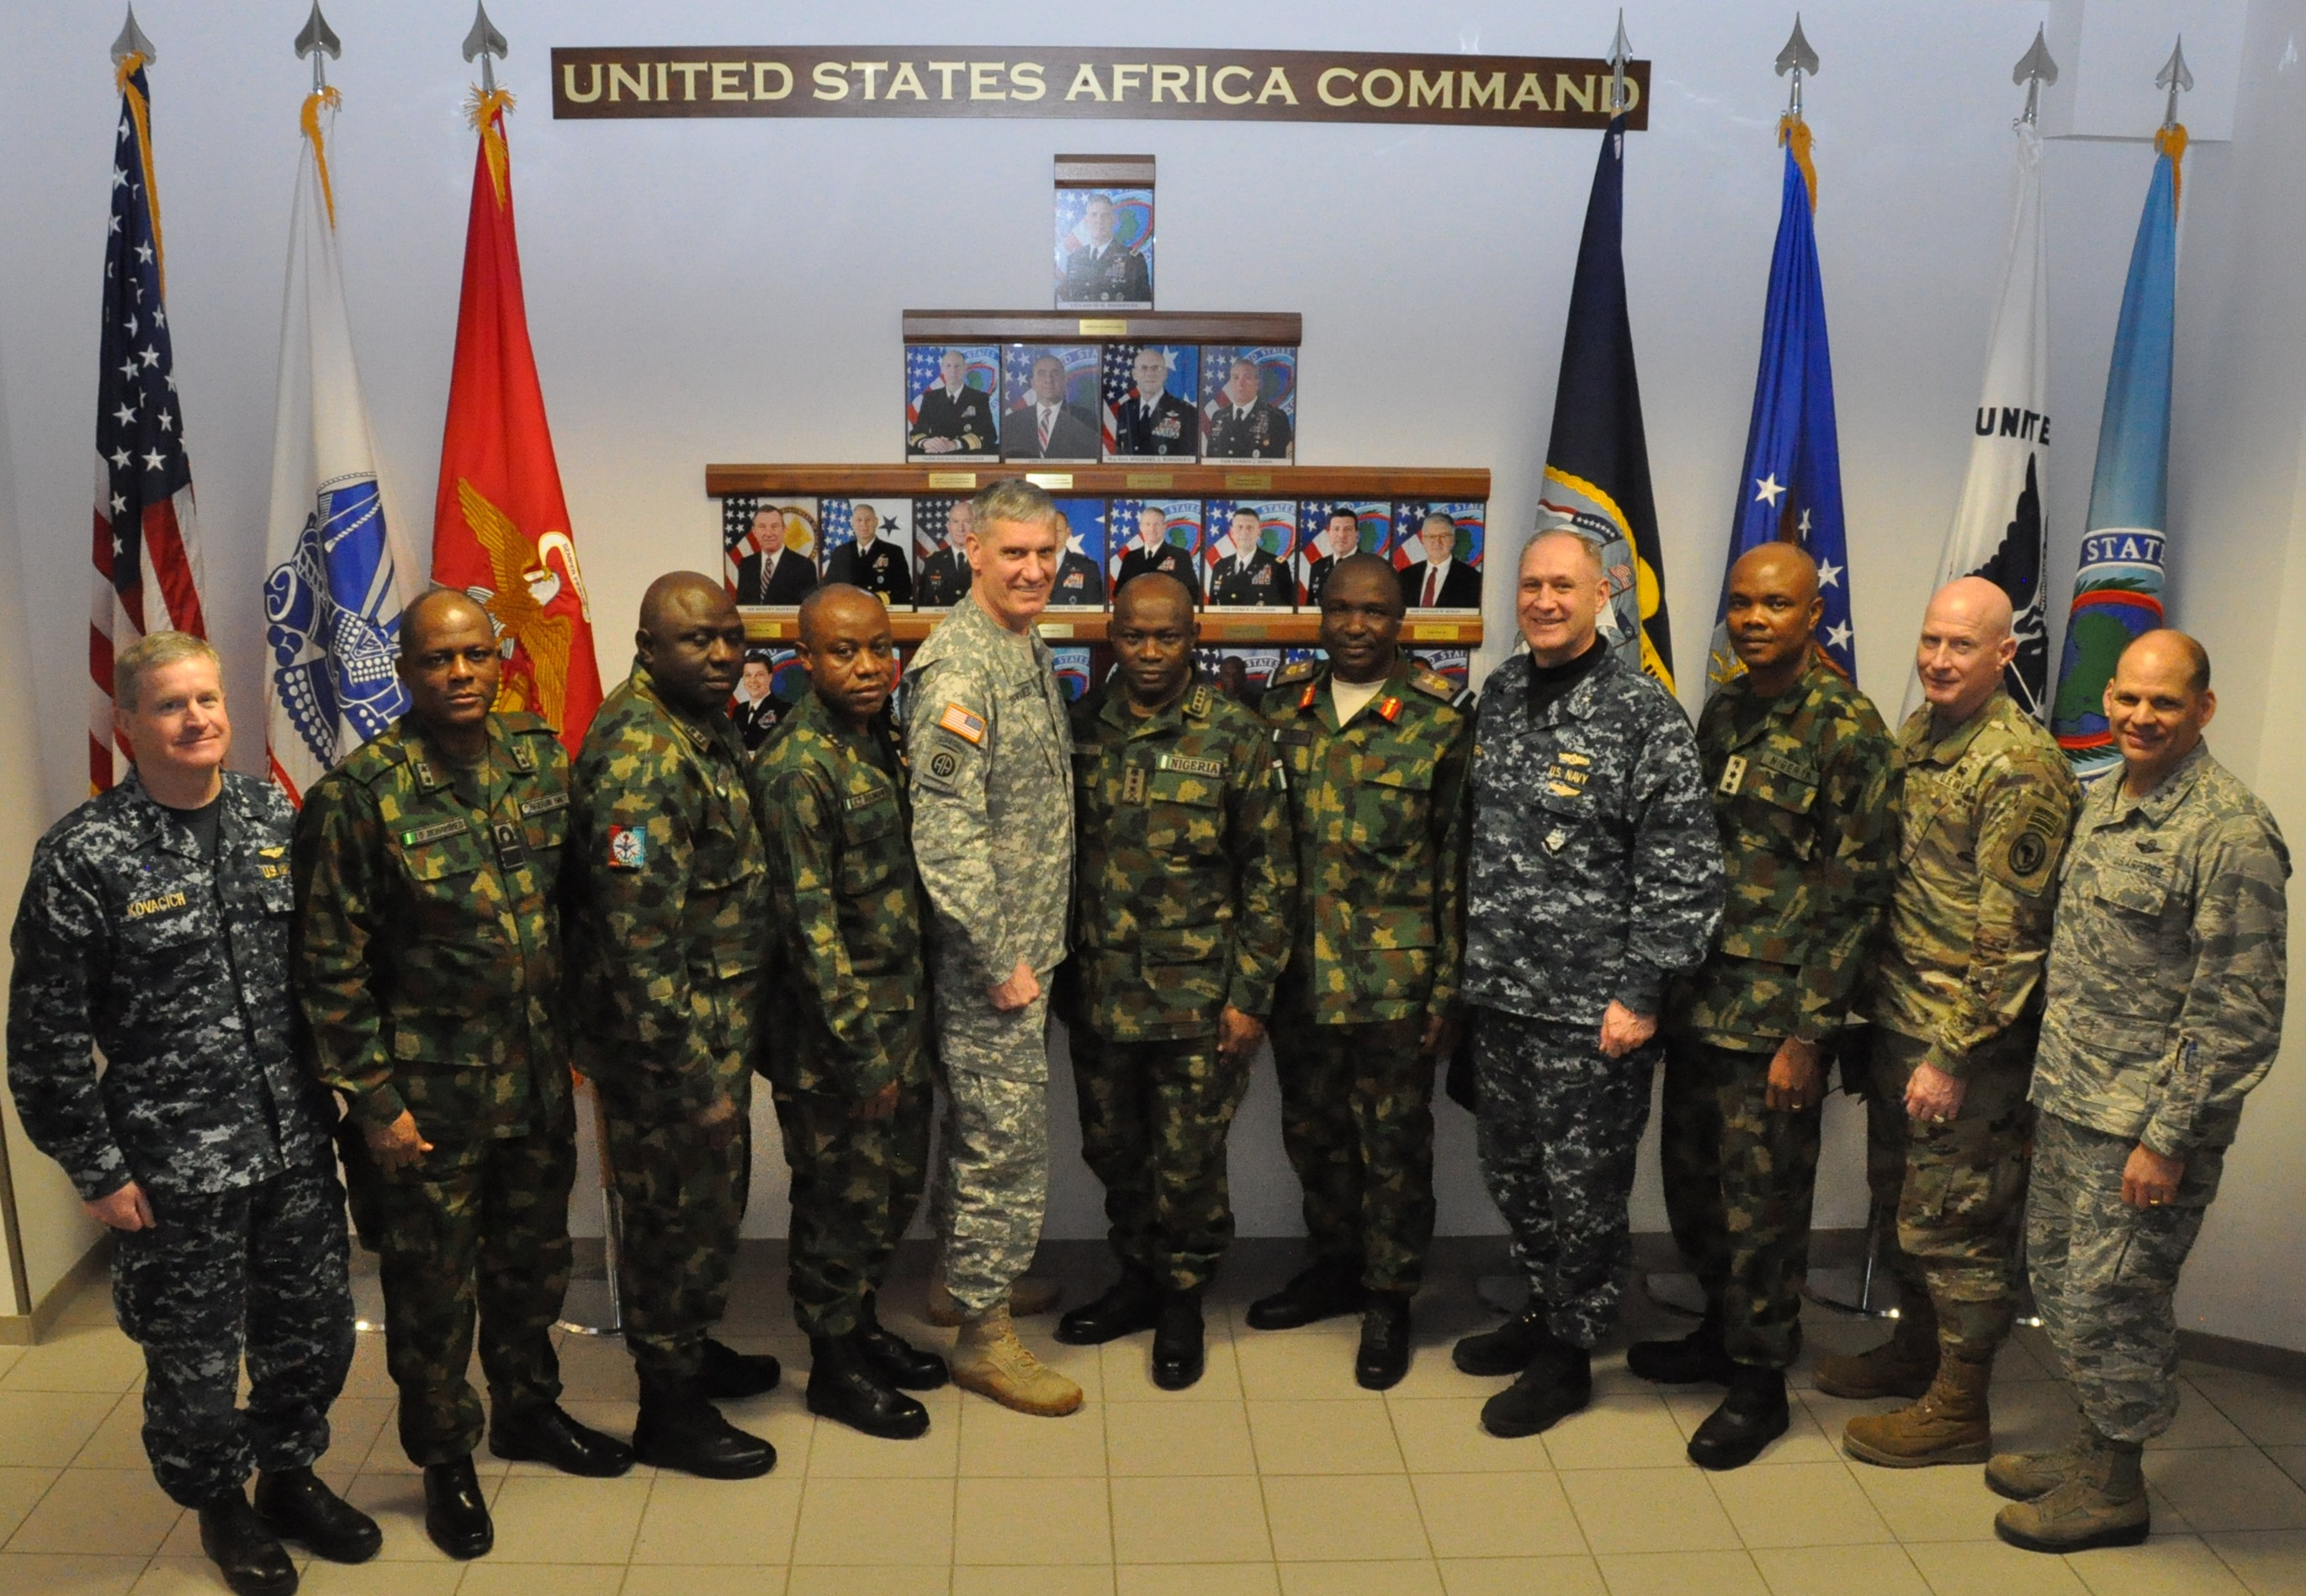 Gen. David Rodriguez, commander, U.S. Africa Command (5th from left) and Gen. Abayomi Olonisakin, Nigeria chief of defence staff (6th from right) pose with select senior staff from AFRICOM and the Nigerian military.  The Nigerians were invited to participate in a two-day meeting with senior AFRICOM commanders and leaders. The purpose of the visit was to reinforce the importance of a strong US-Nigeria security cooperation relationship, with topics focused on ways to counter terrorism, joint operations, logistics and maritime security in the Gulf of Guinea, Feb. 9, 2016, U.S. Army Garrison Stuttgart, Germany. (Photo by Brenda Law, U.S. Africa Command Public Affairs/RELEASED)